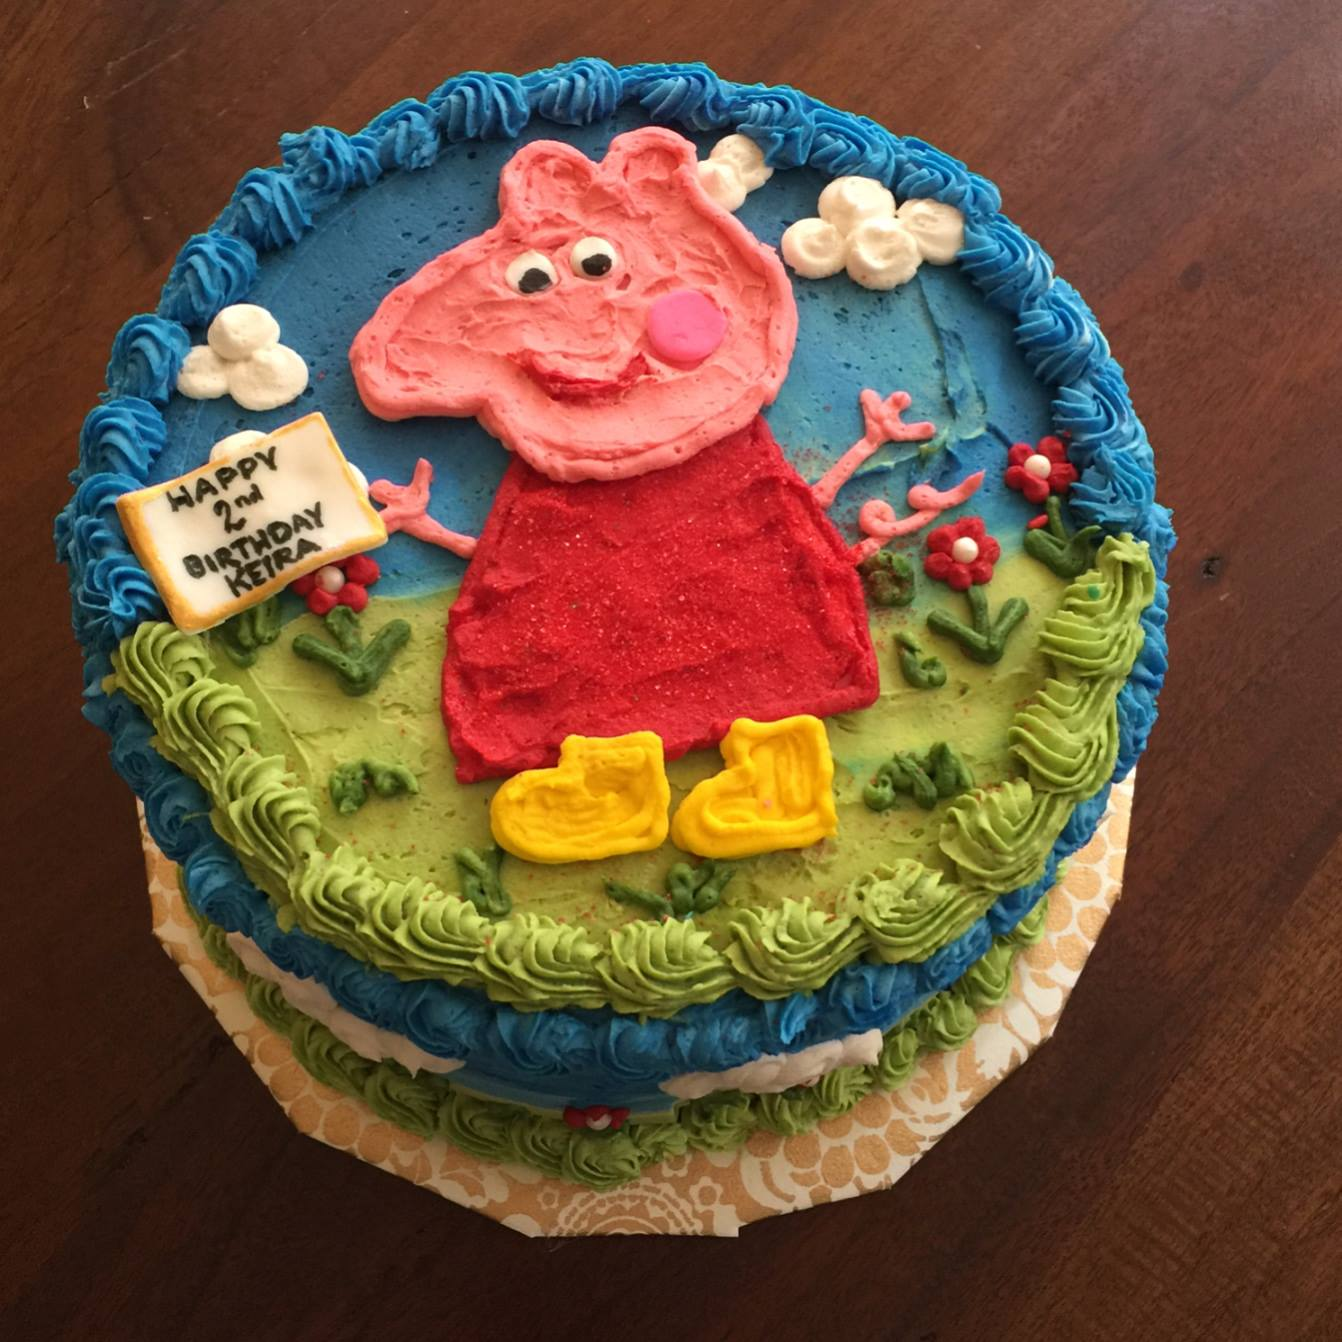 Happy Birthday from Peppa Pig